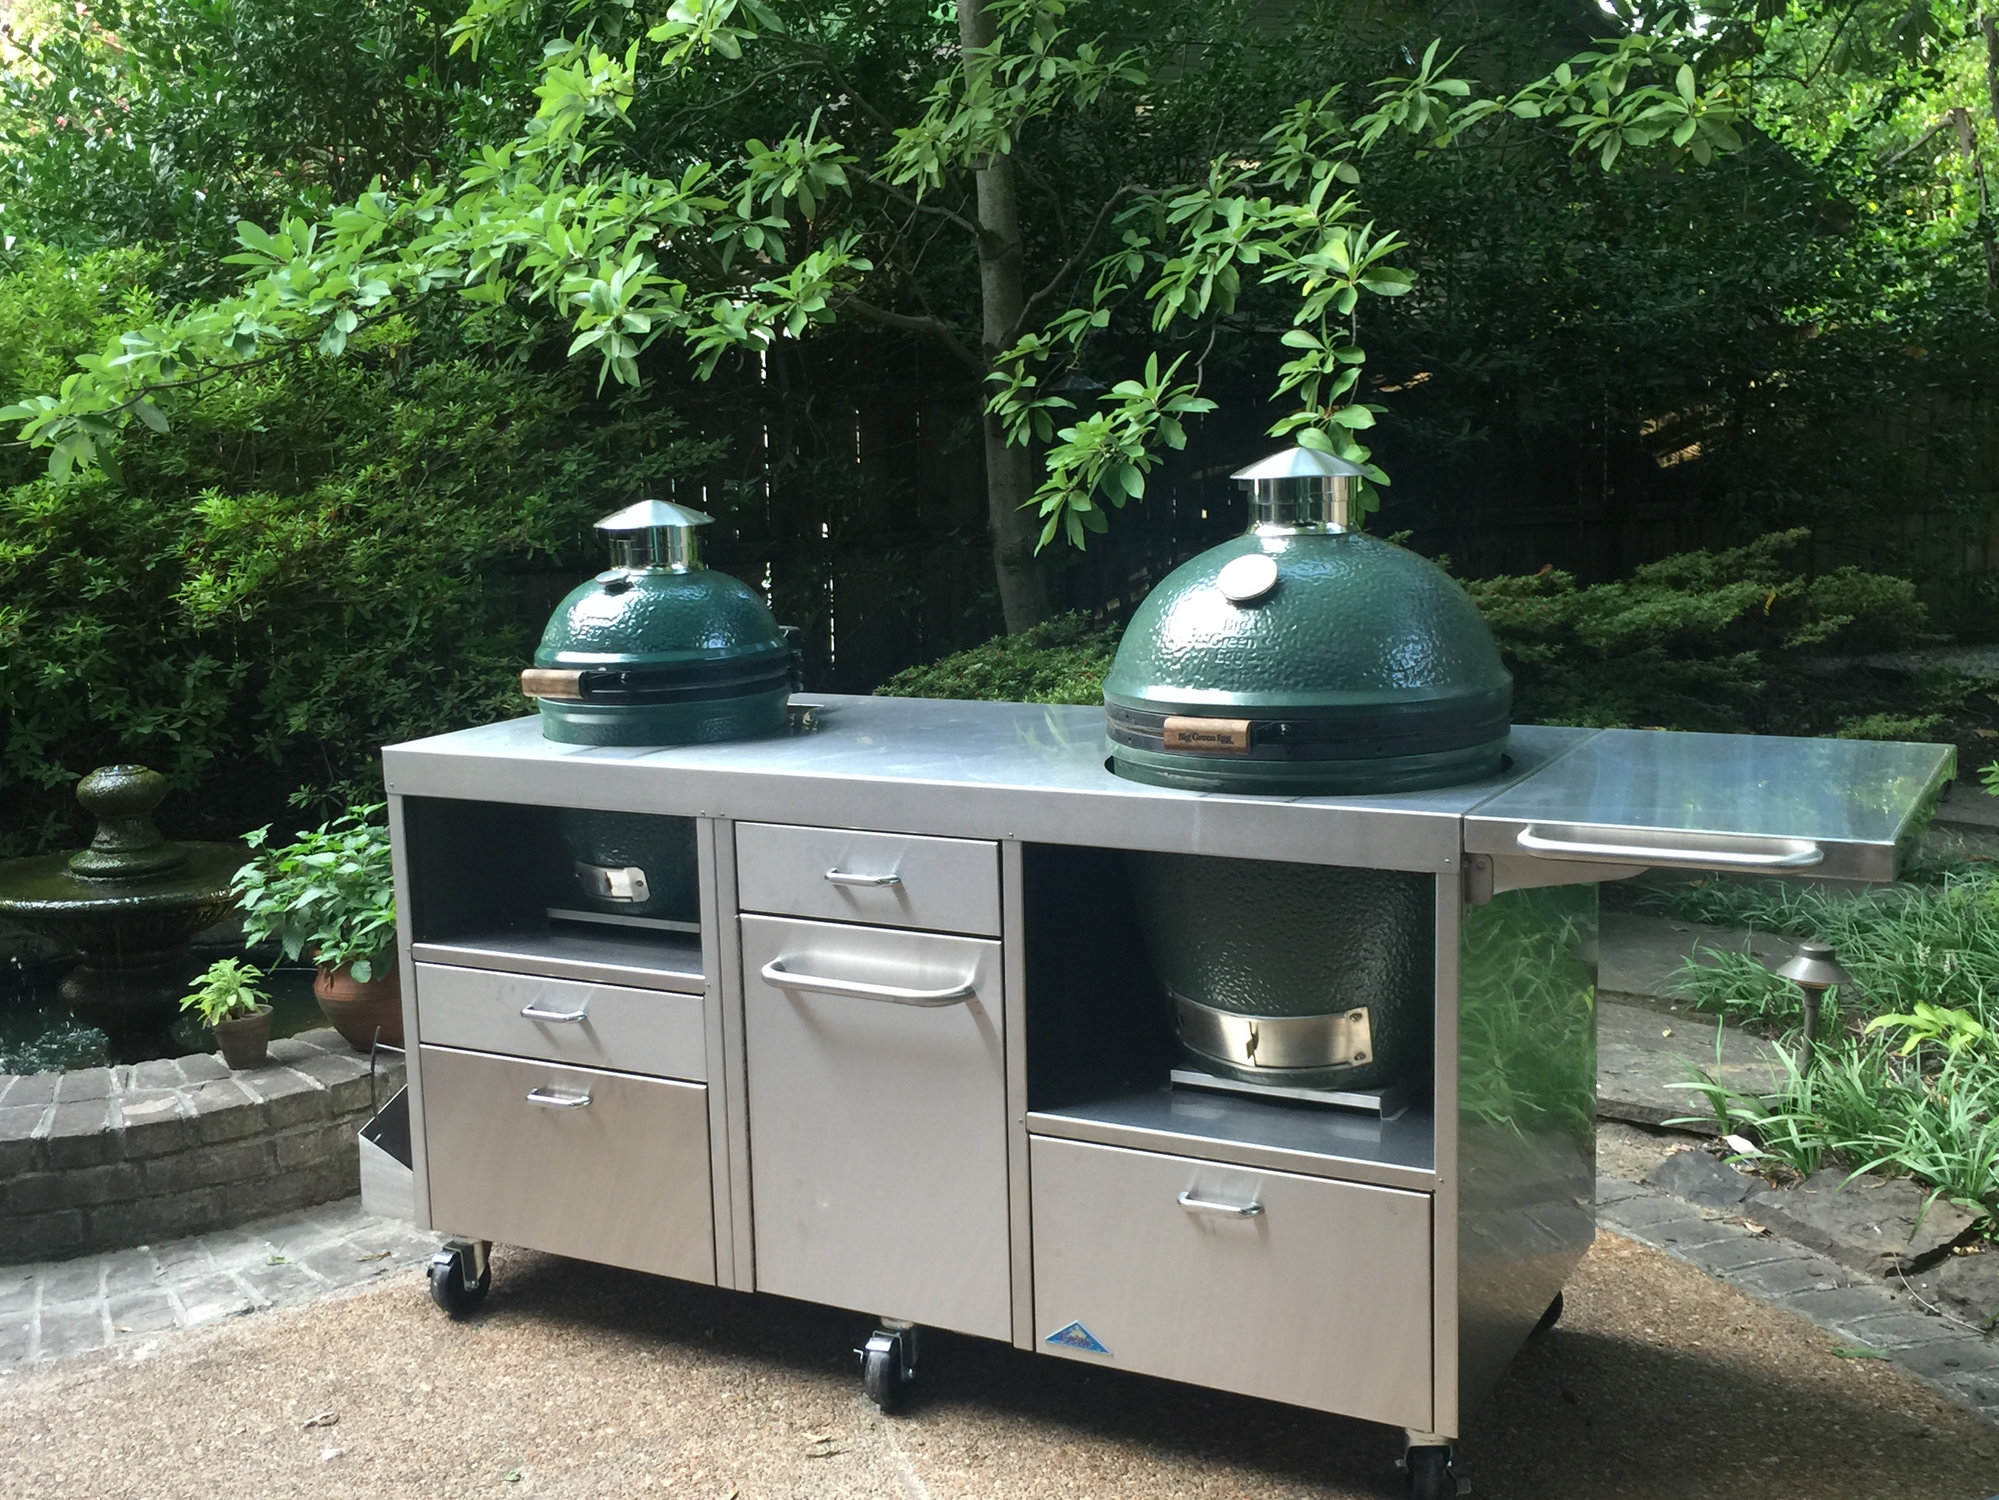 New Table And Refurbished Eggs Big Green Egg Egghead